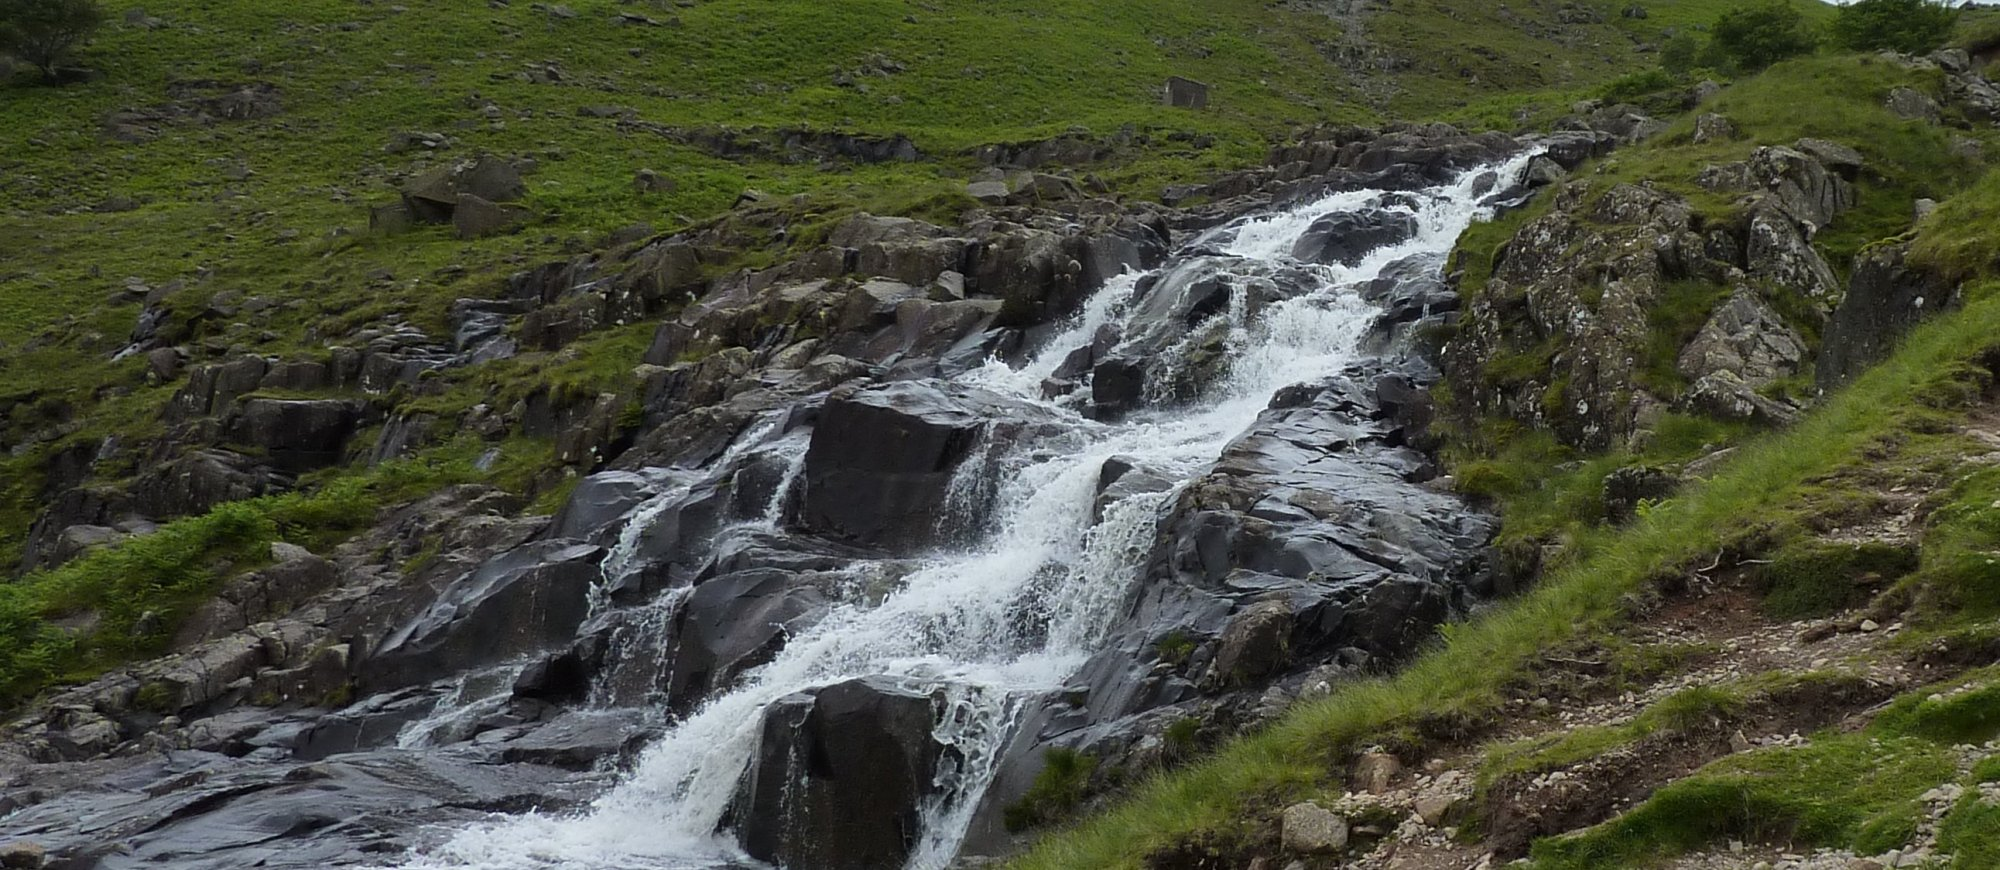 One of the many lovely waterfalls falling into Langstrath valley